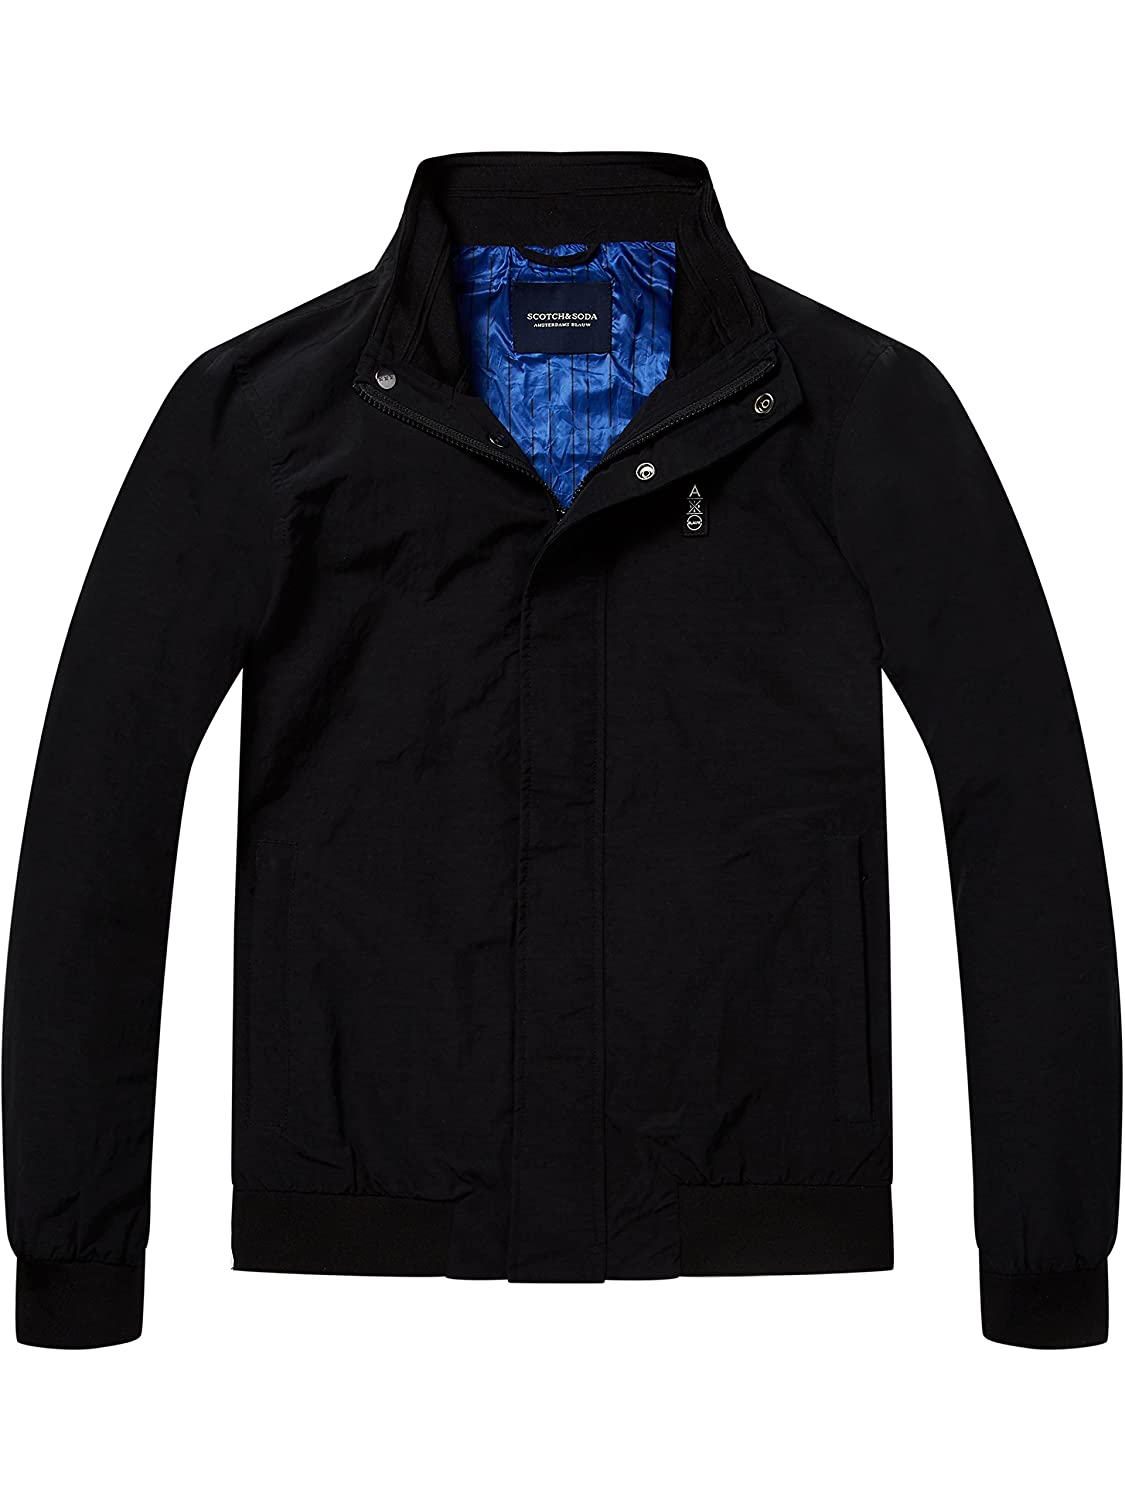 Scotch & Soda Men's Blauw Jacket, Black